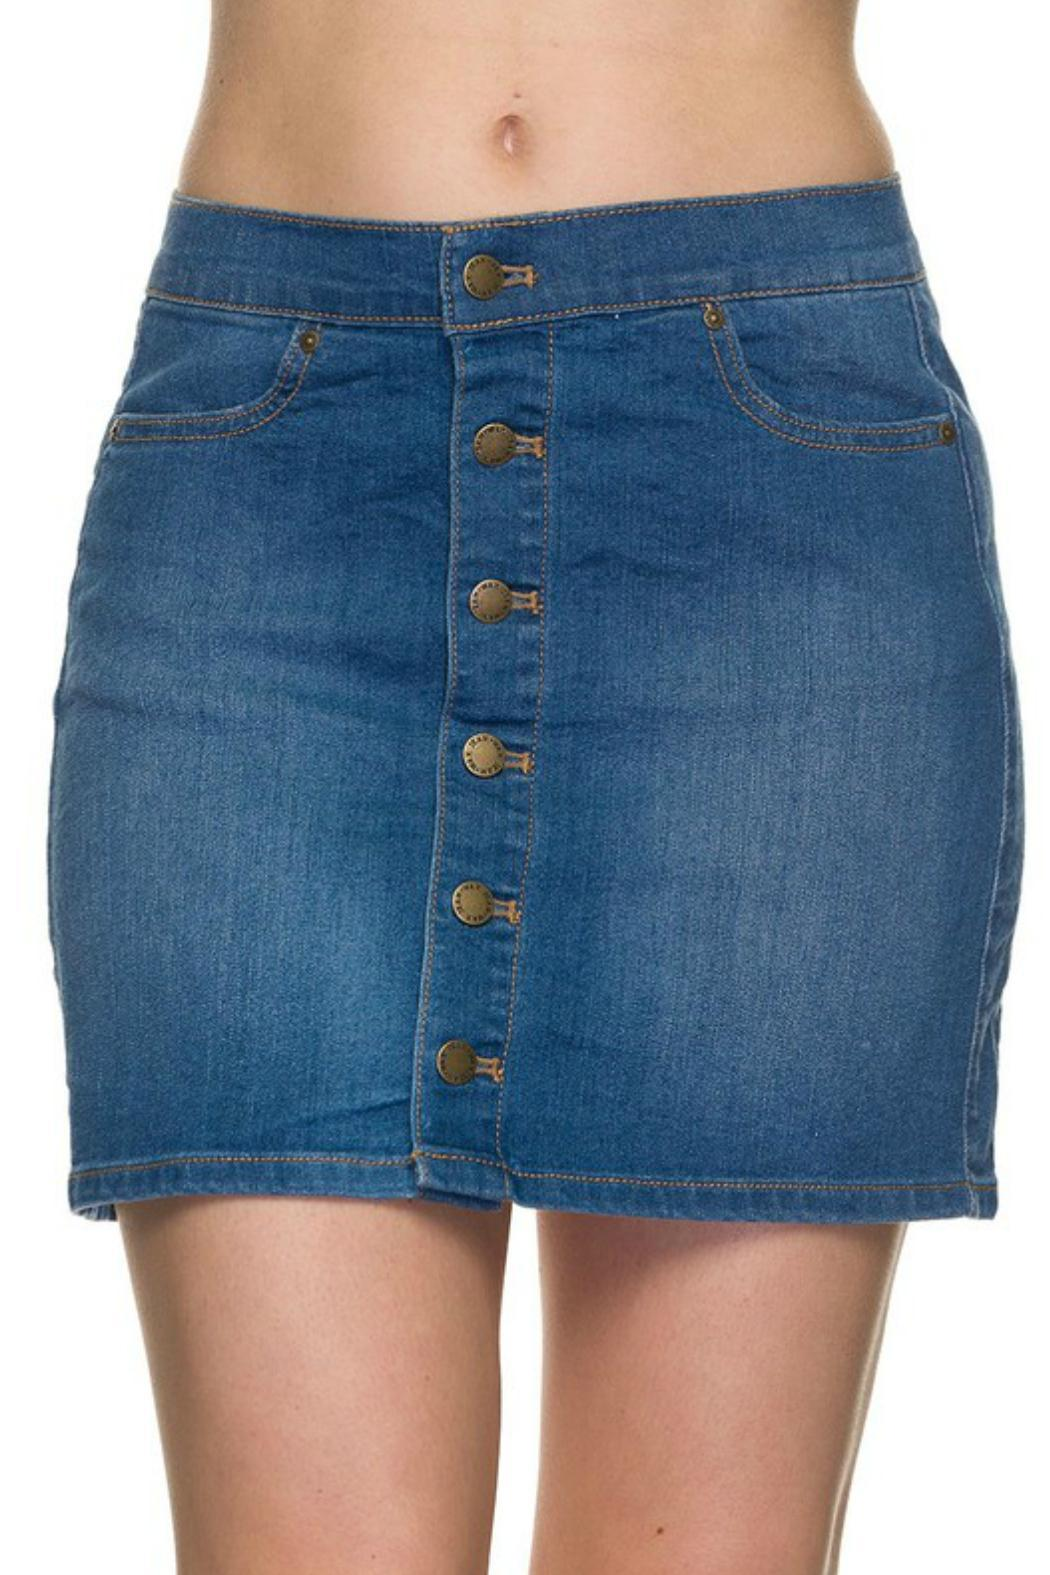 Wax Jean Basic Button Denim Skirt from Fayetteville by Gatsby's ...